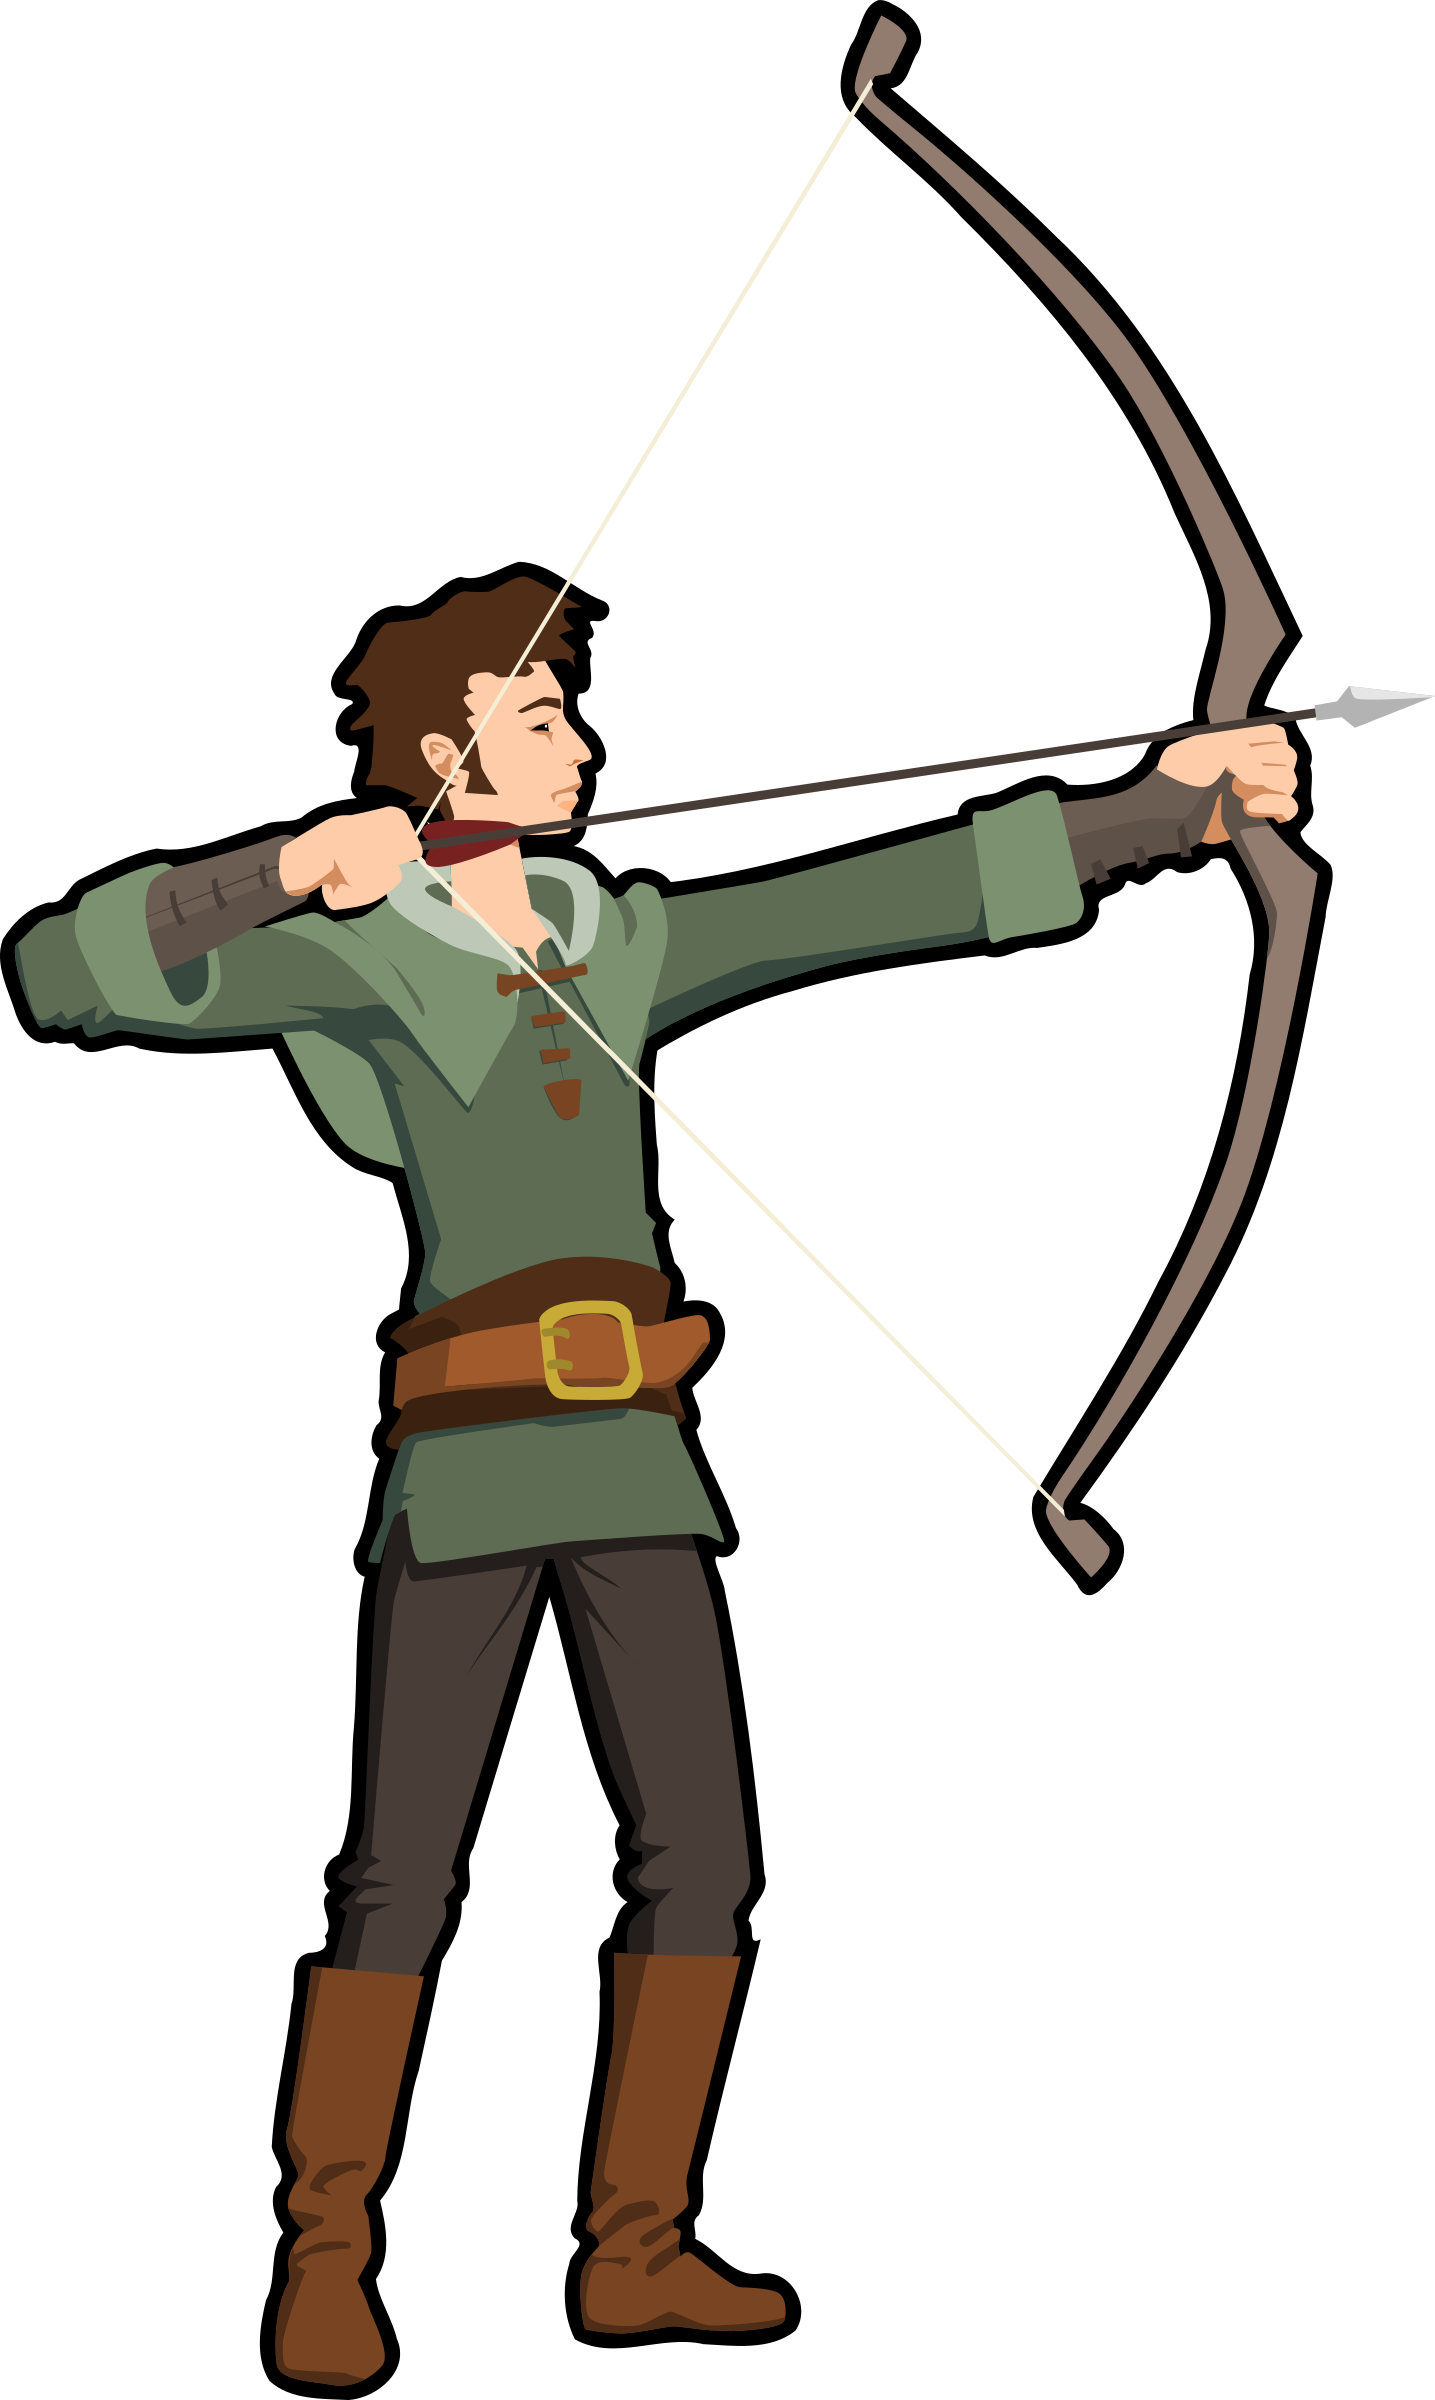 svg Hunting vector. Clipart archer big image